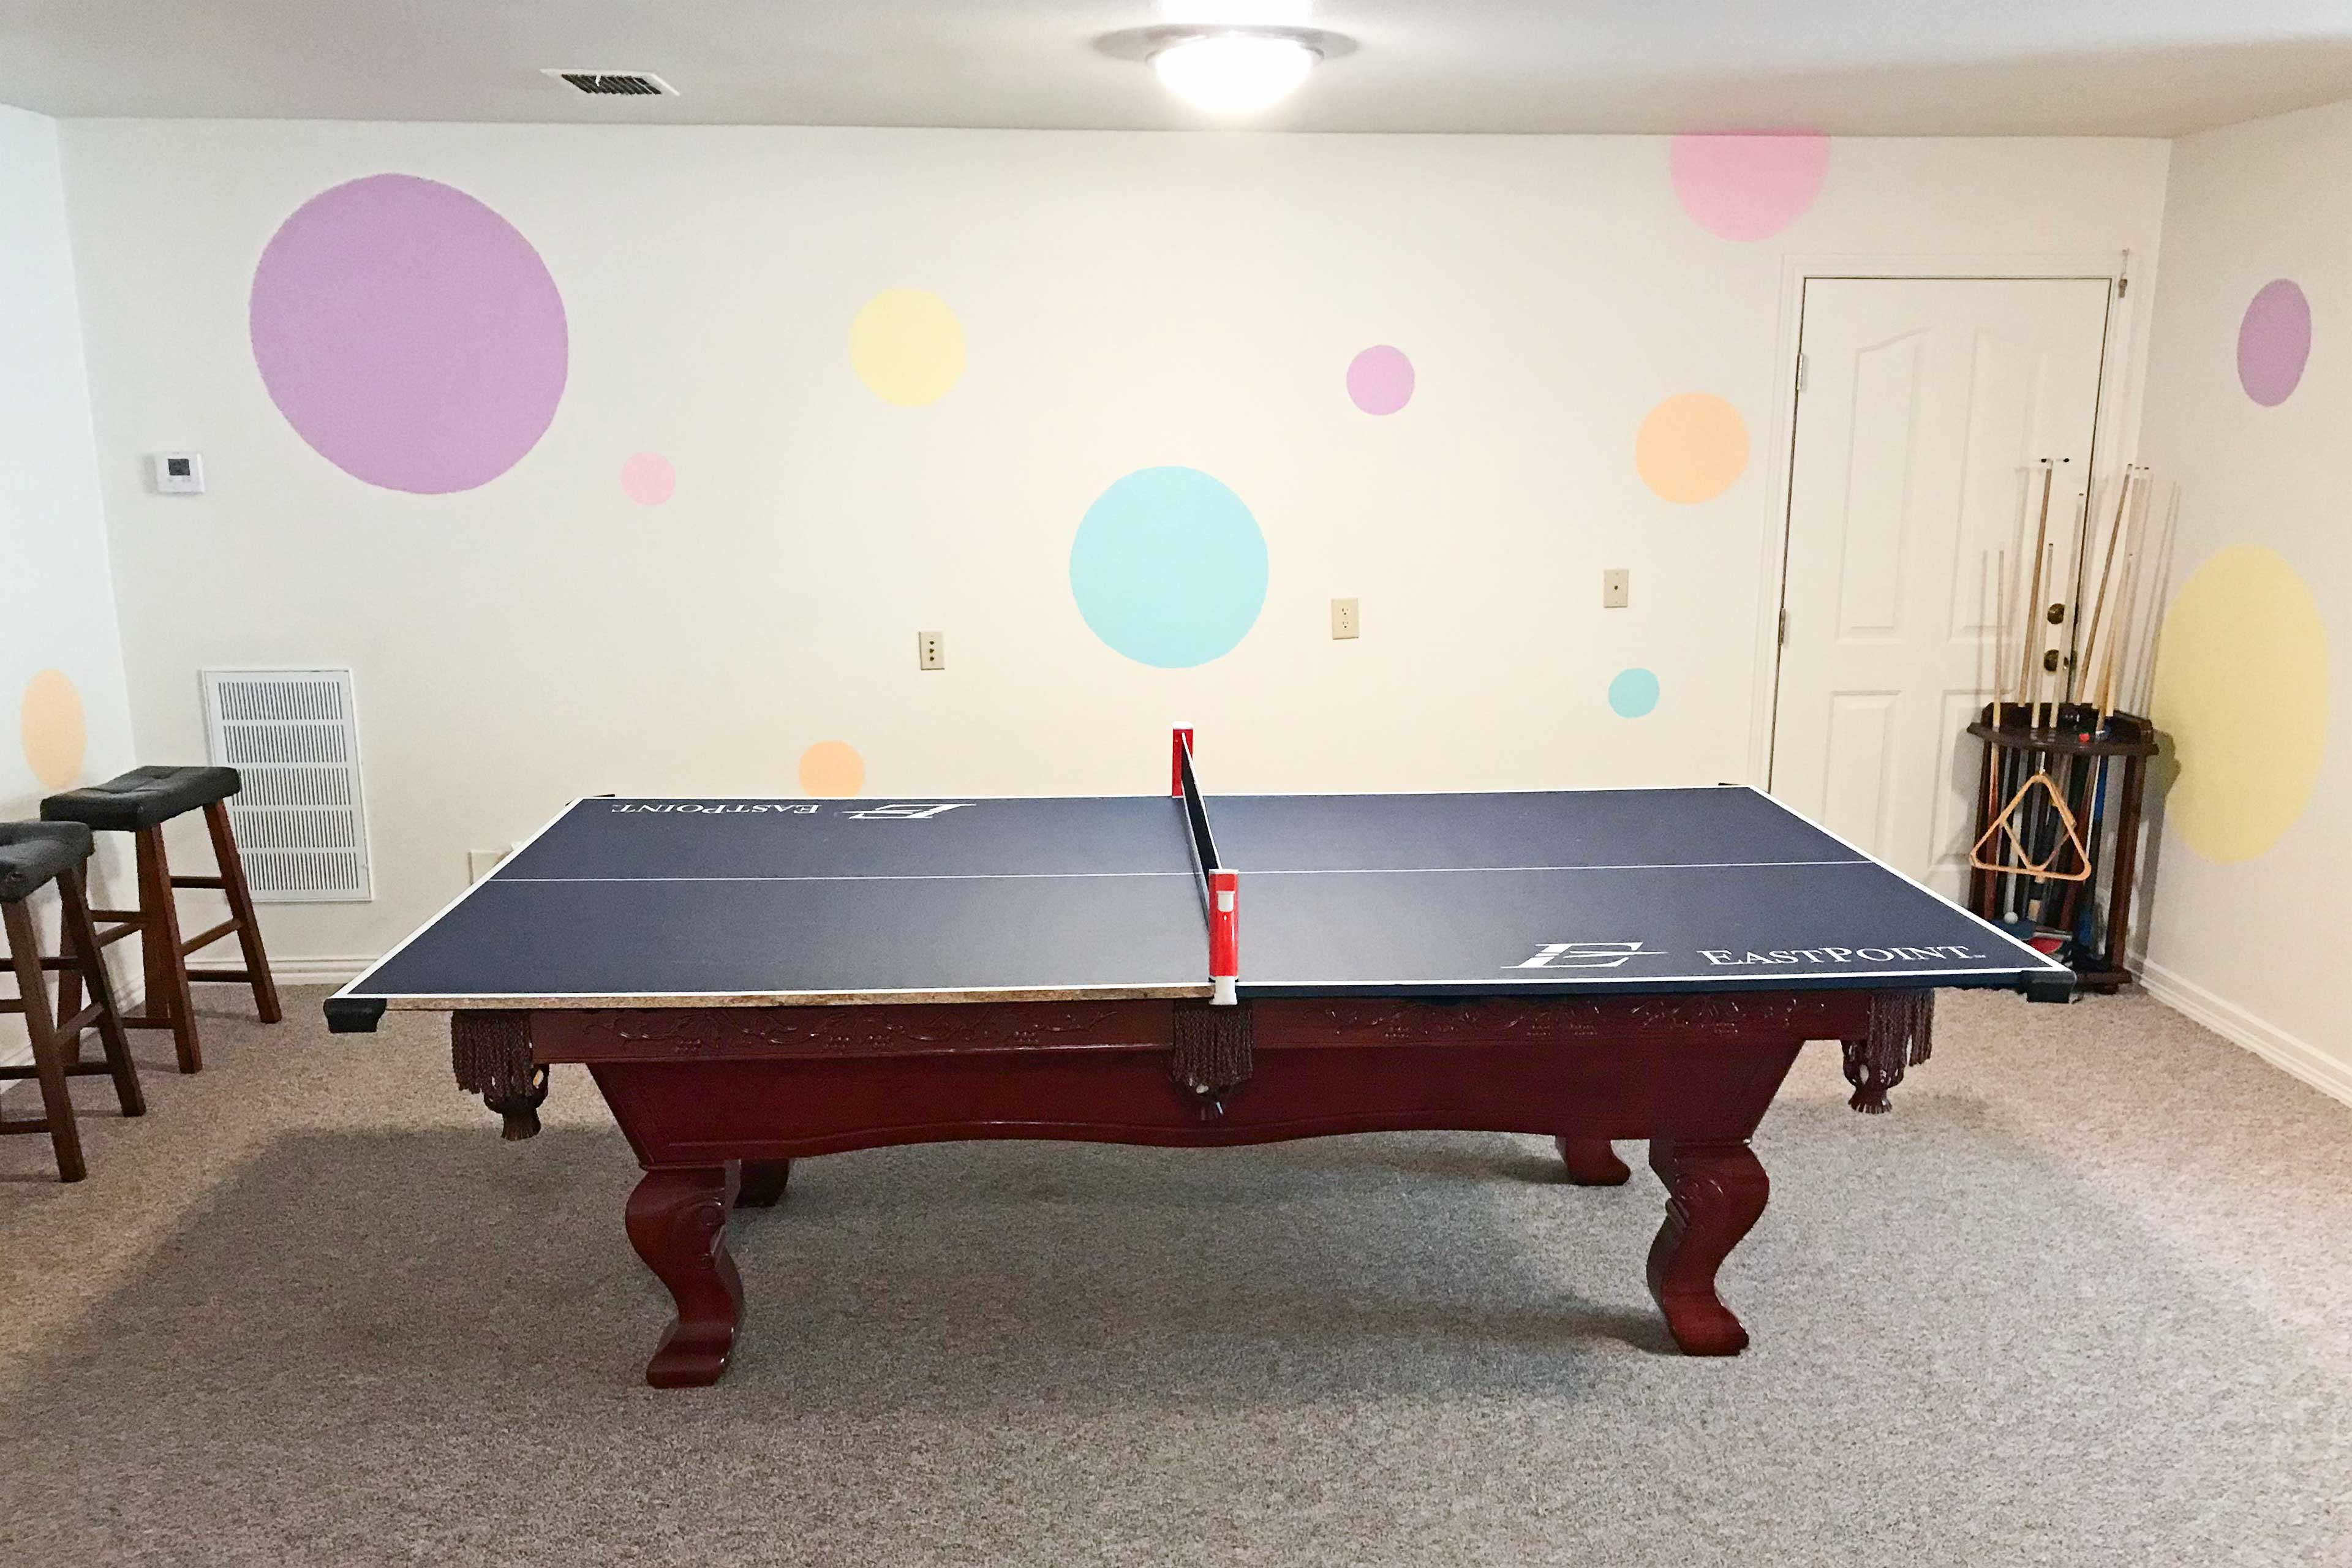 The billiards table transforms into a ping-pong table.